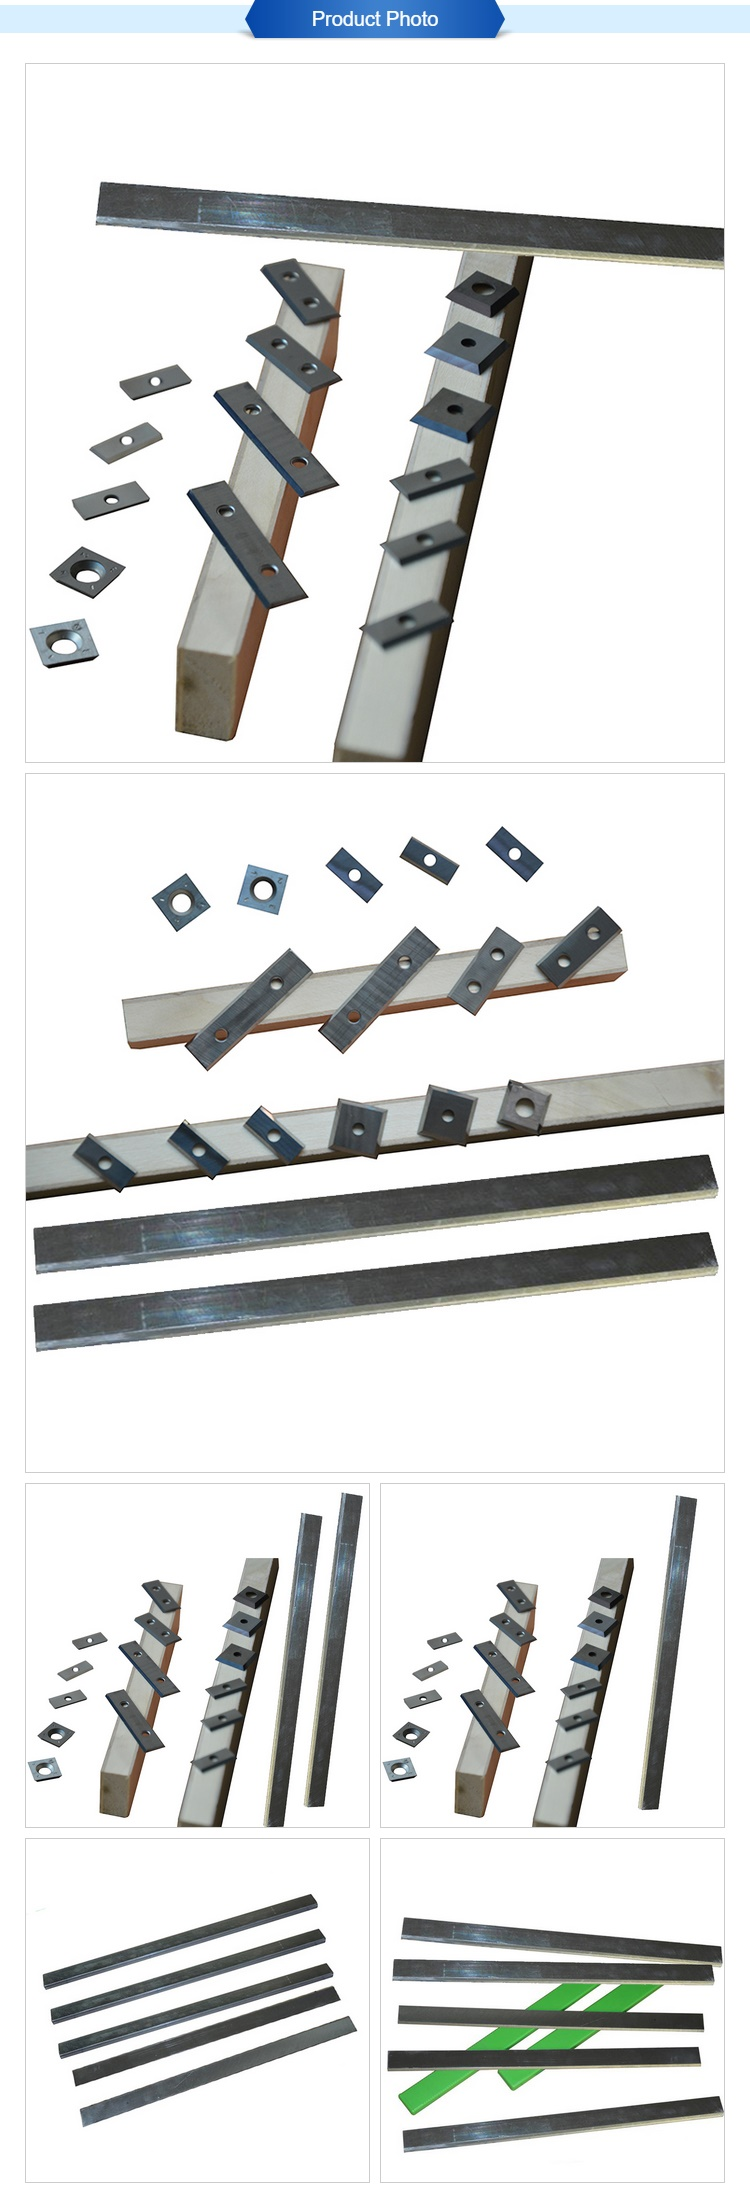 Tungsten Carbide Insert Knives or blades as wood working machinery part